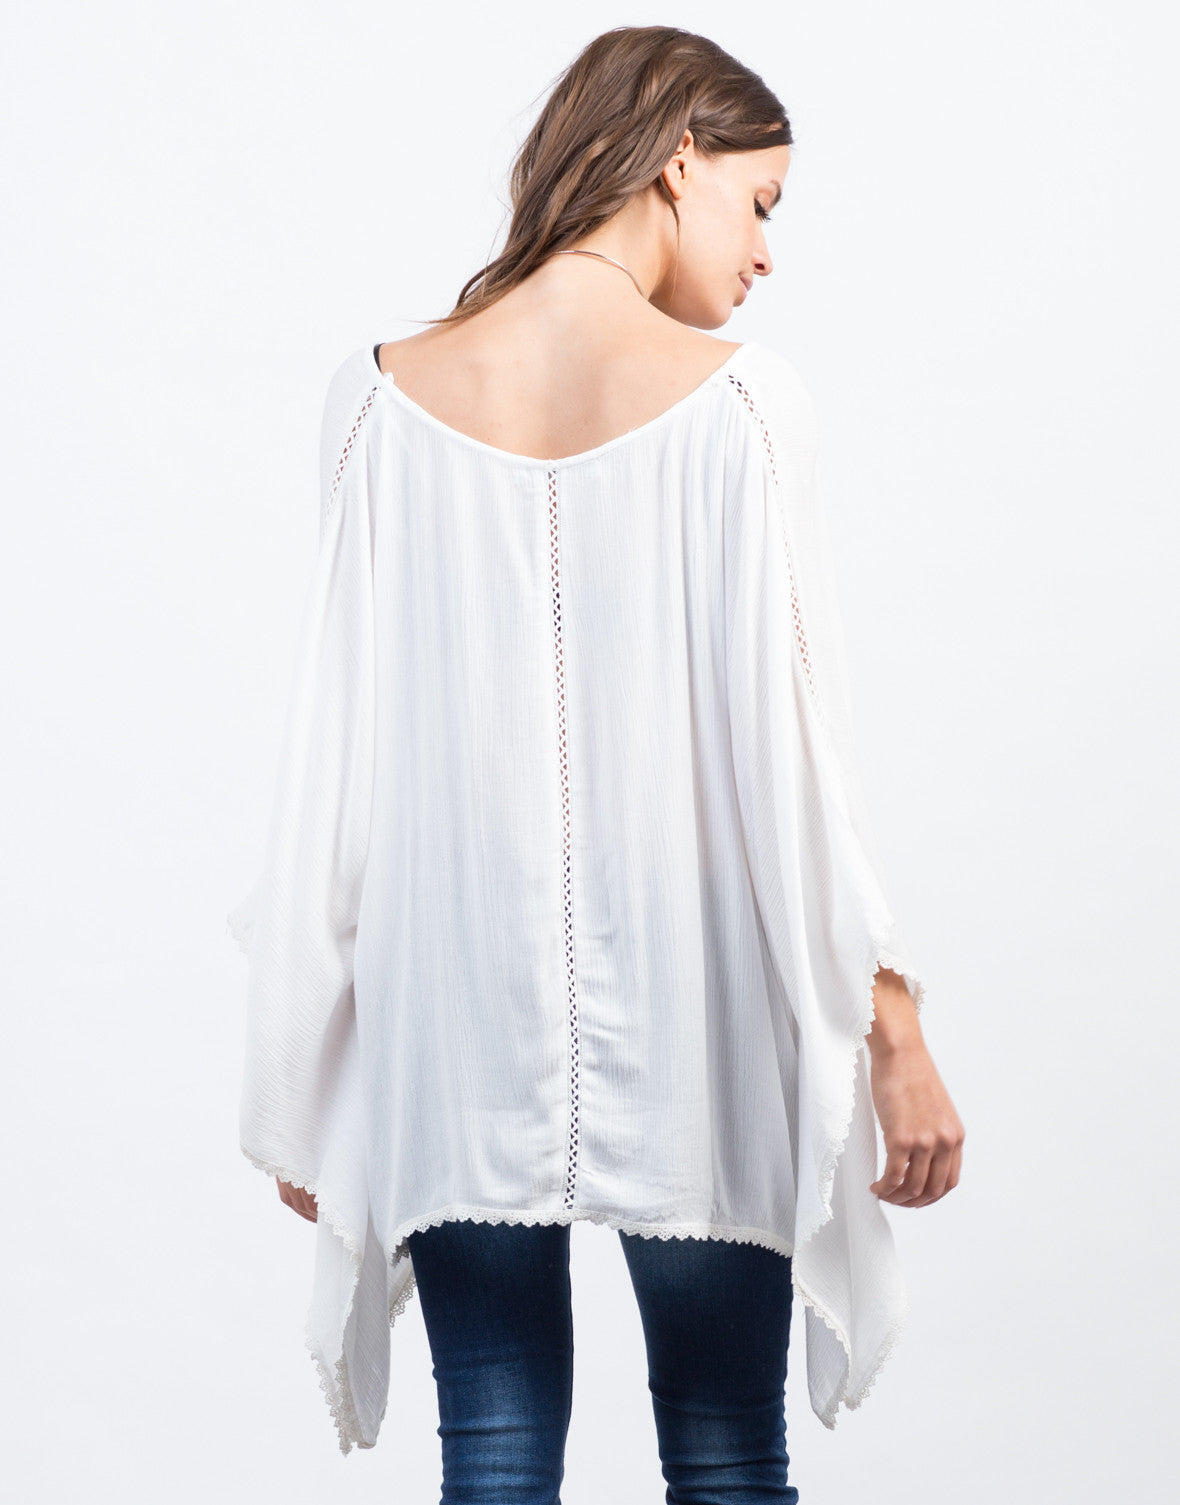 Back View of Crochet Lace Poncho Top